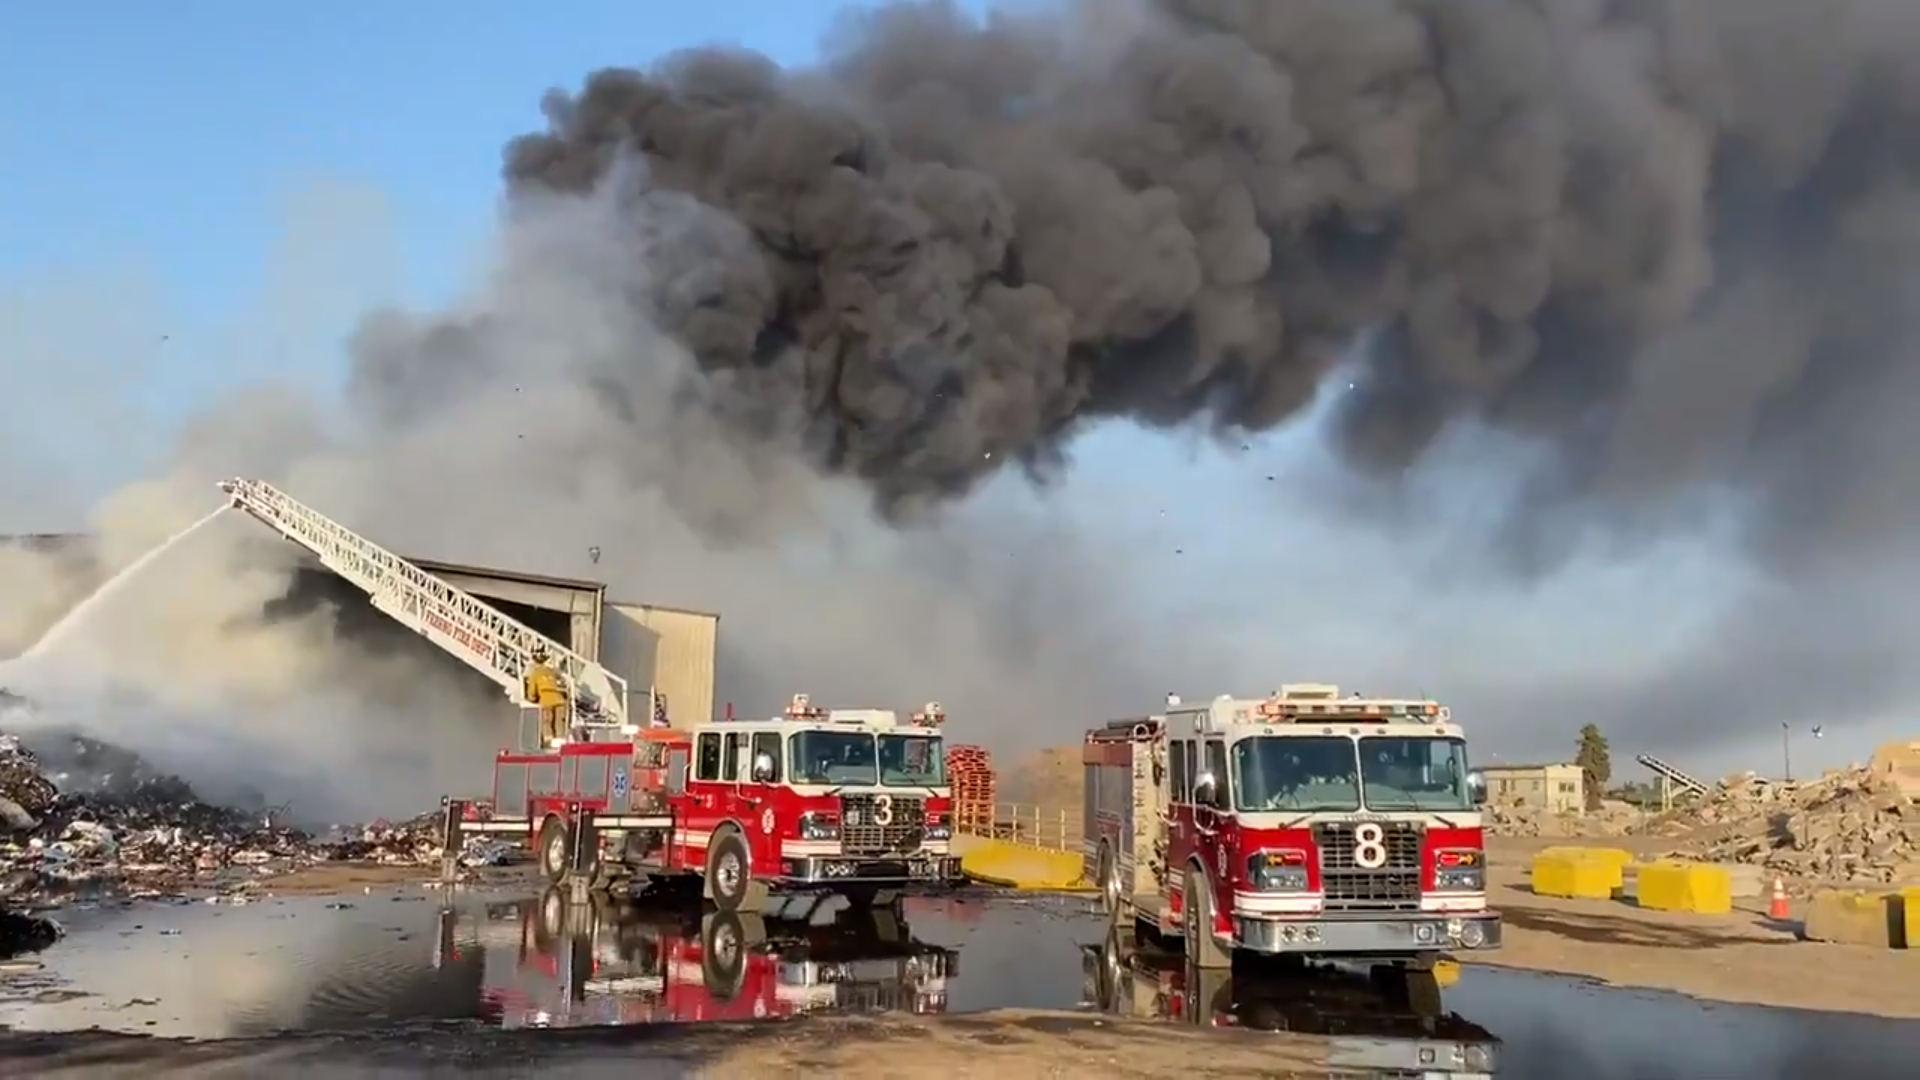 Over 60 firefighters battle blaze next to Hwy 99 in Fresno